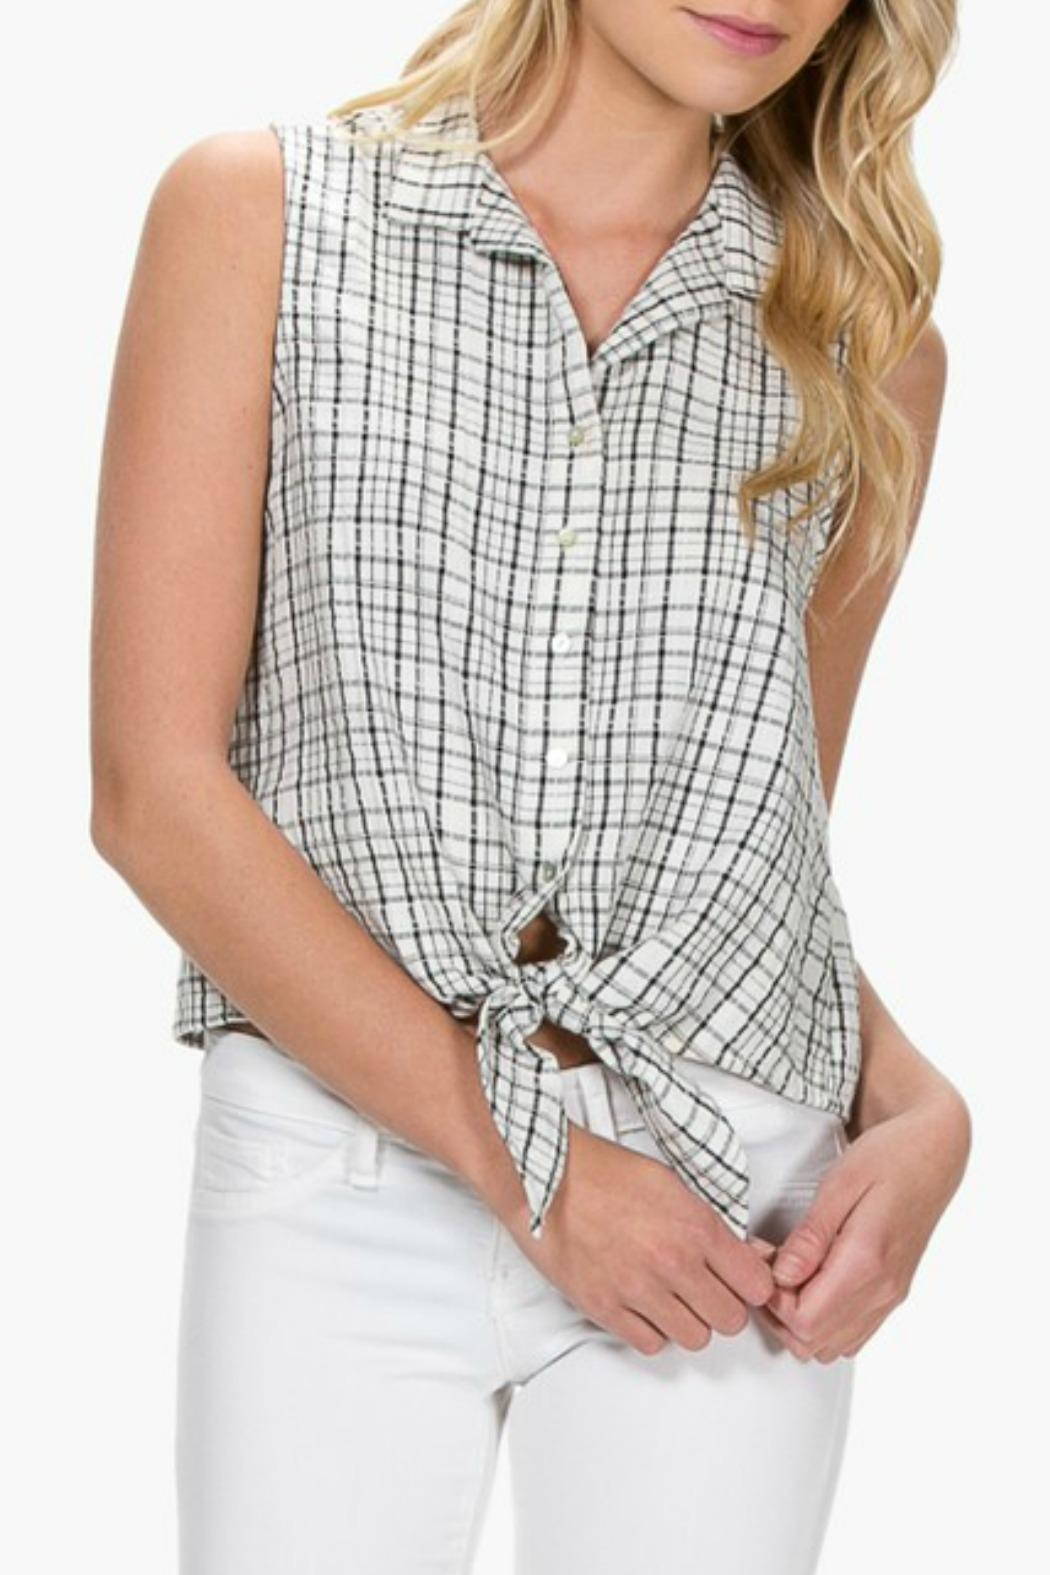 Everly Plaid Front-Tie Top - Main Image